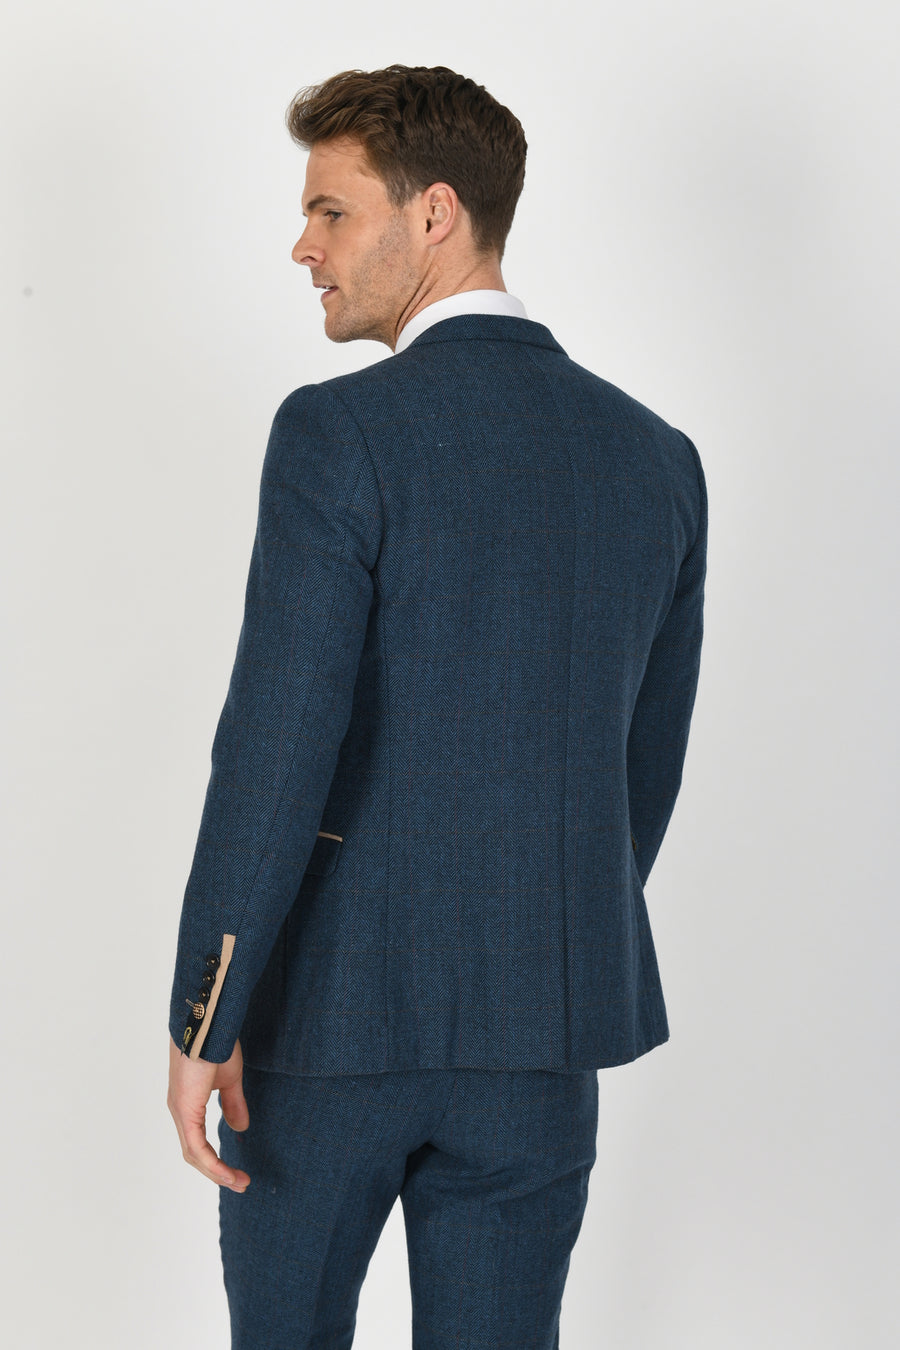 Dion Blue Wedding Jacket - Wedding Suit Direct